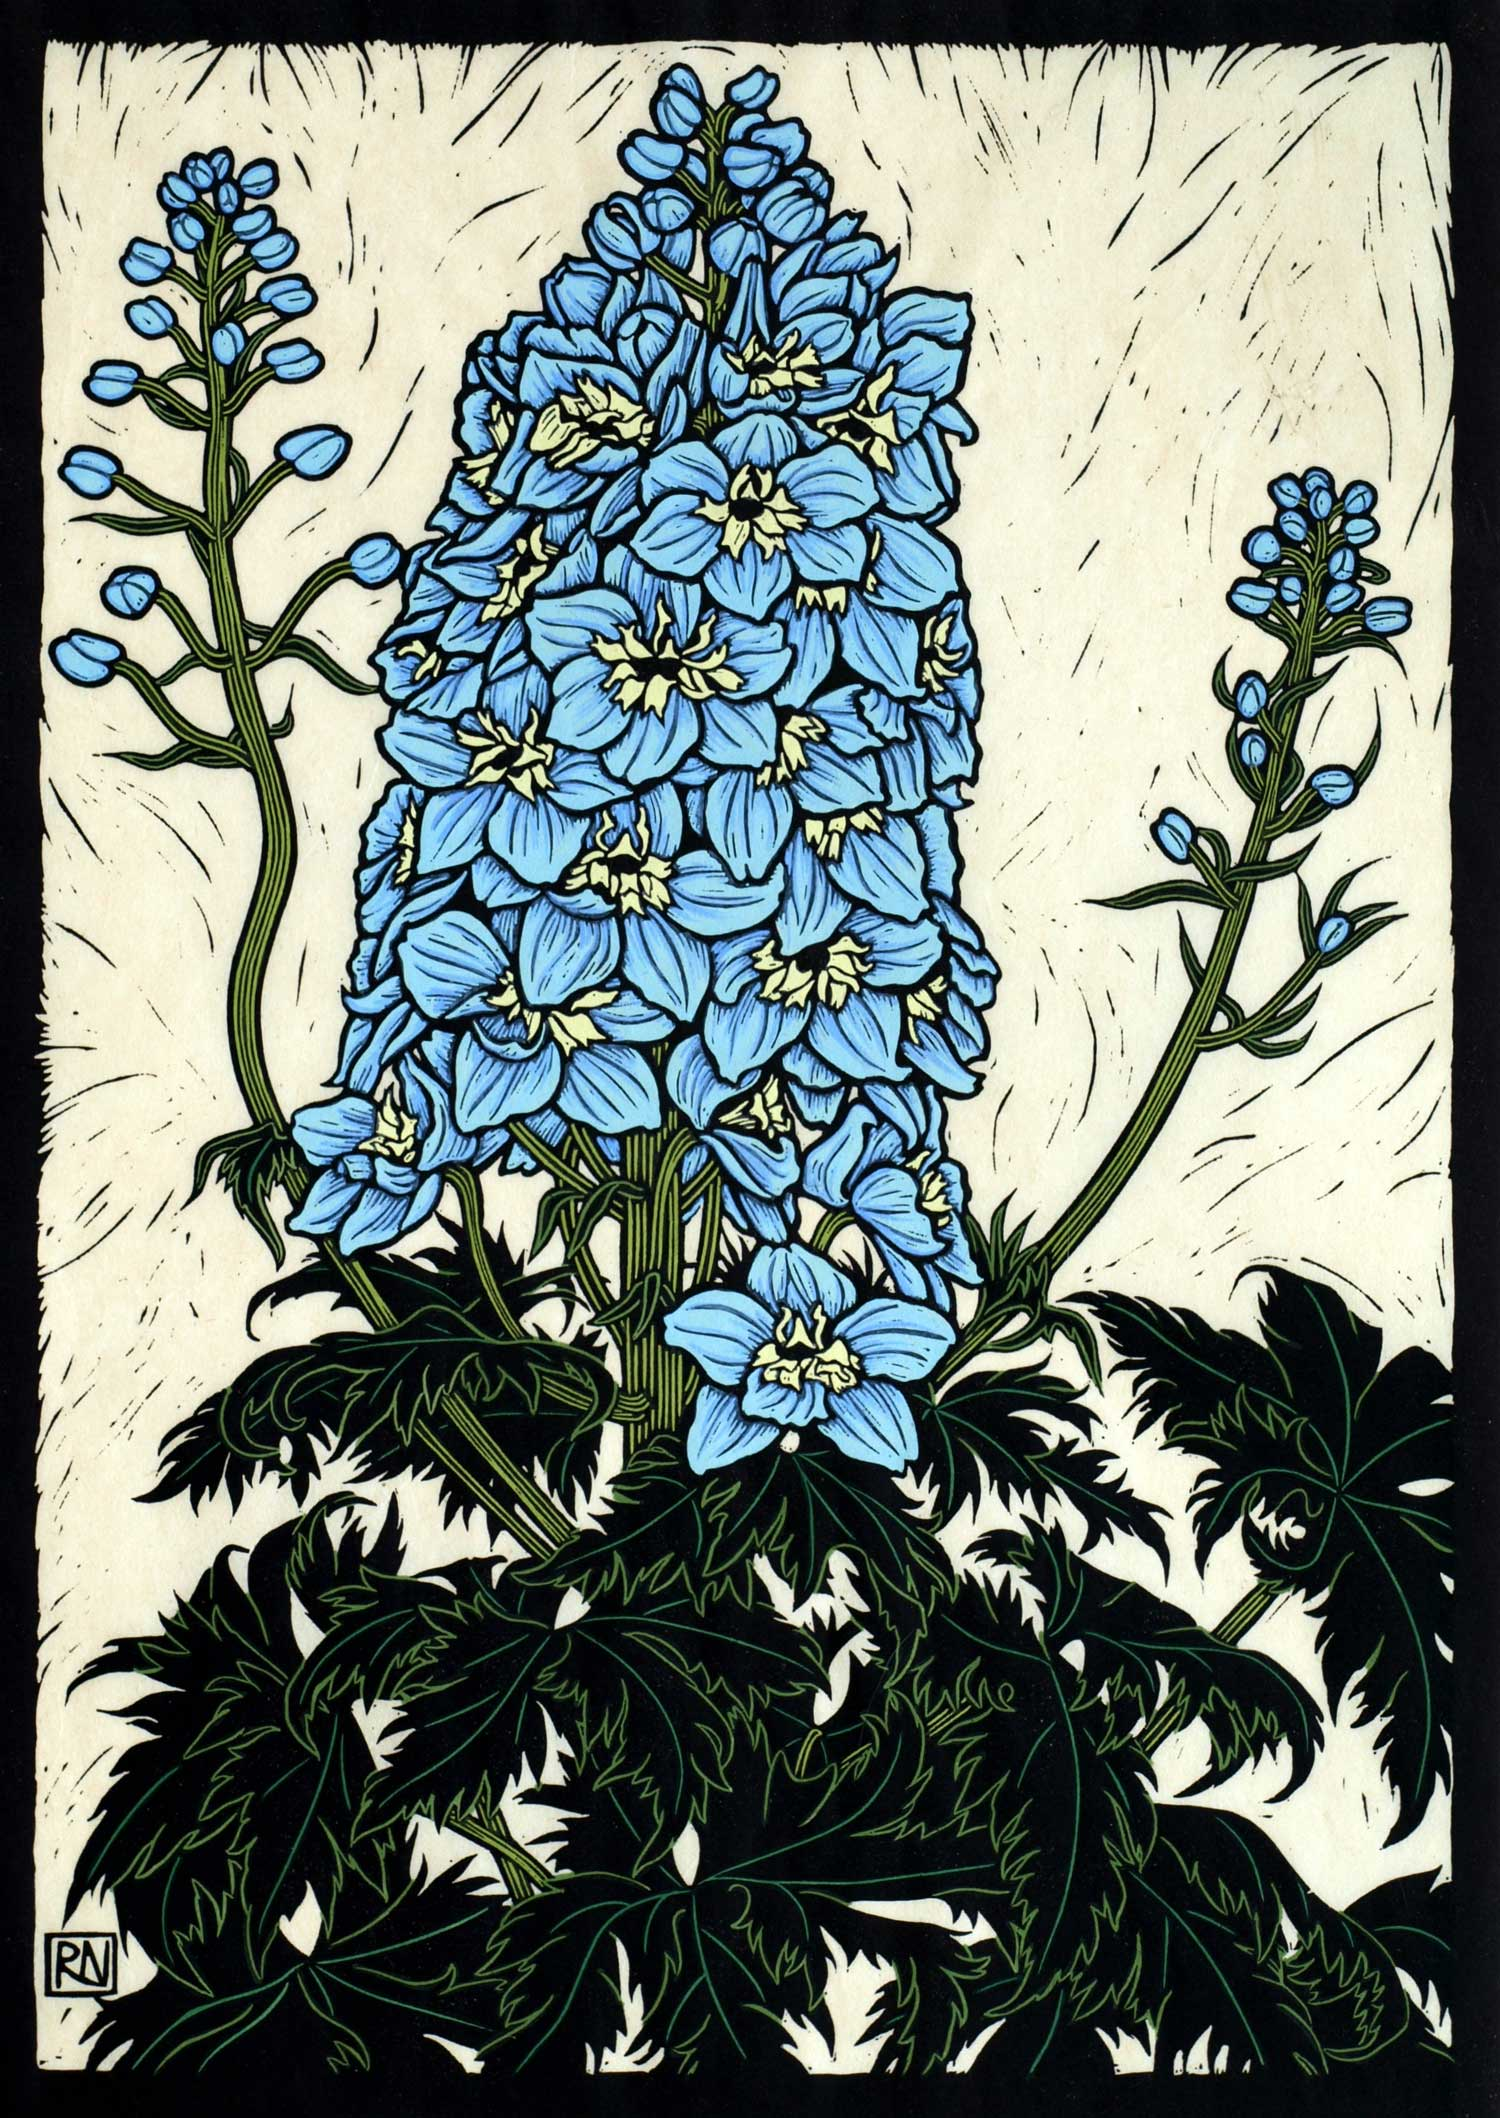 DELPHINIUM  49 X 35 CM, EDITION OF 50  HAND-COLOURED LINOCUT ON HANDMADE JAPANESE PAPER  $1,100